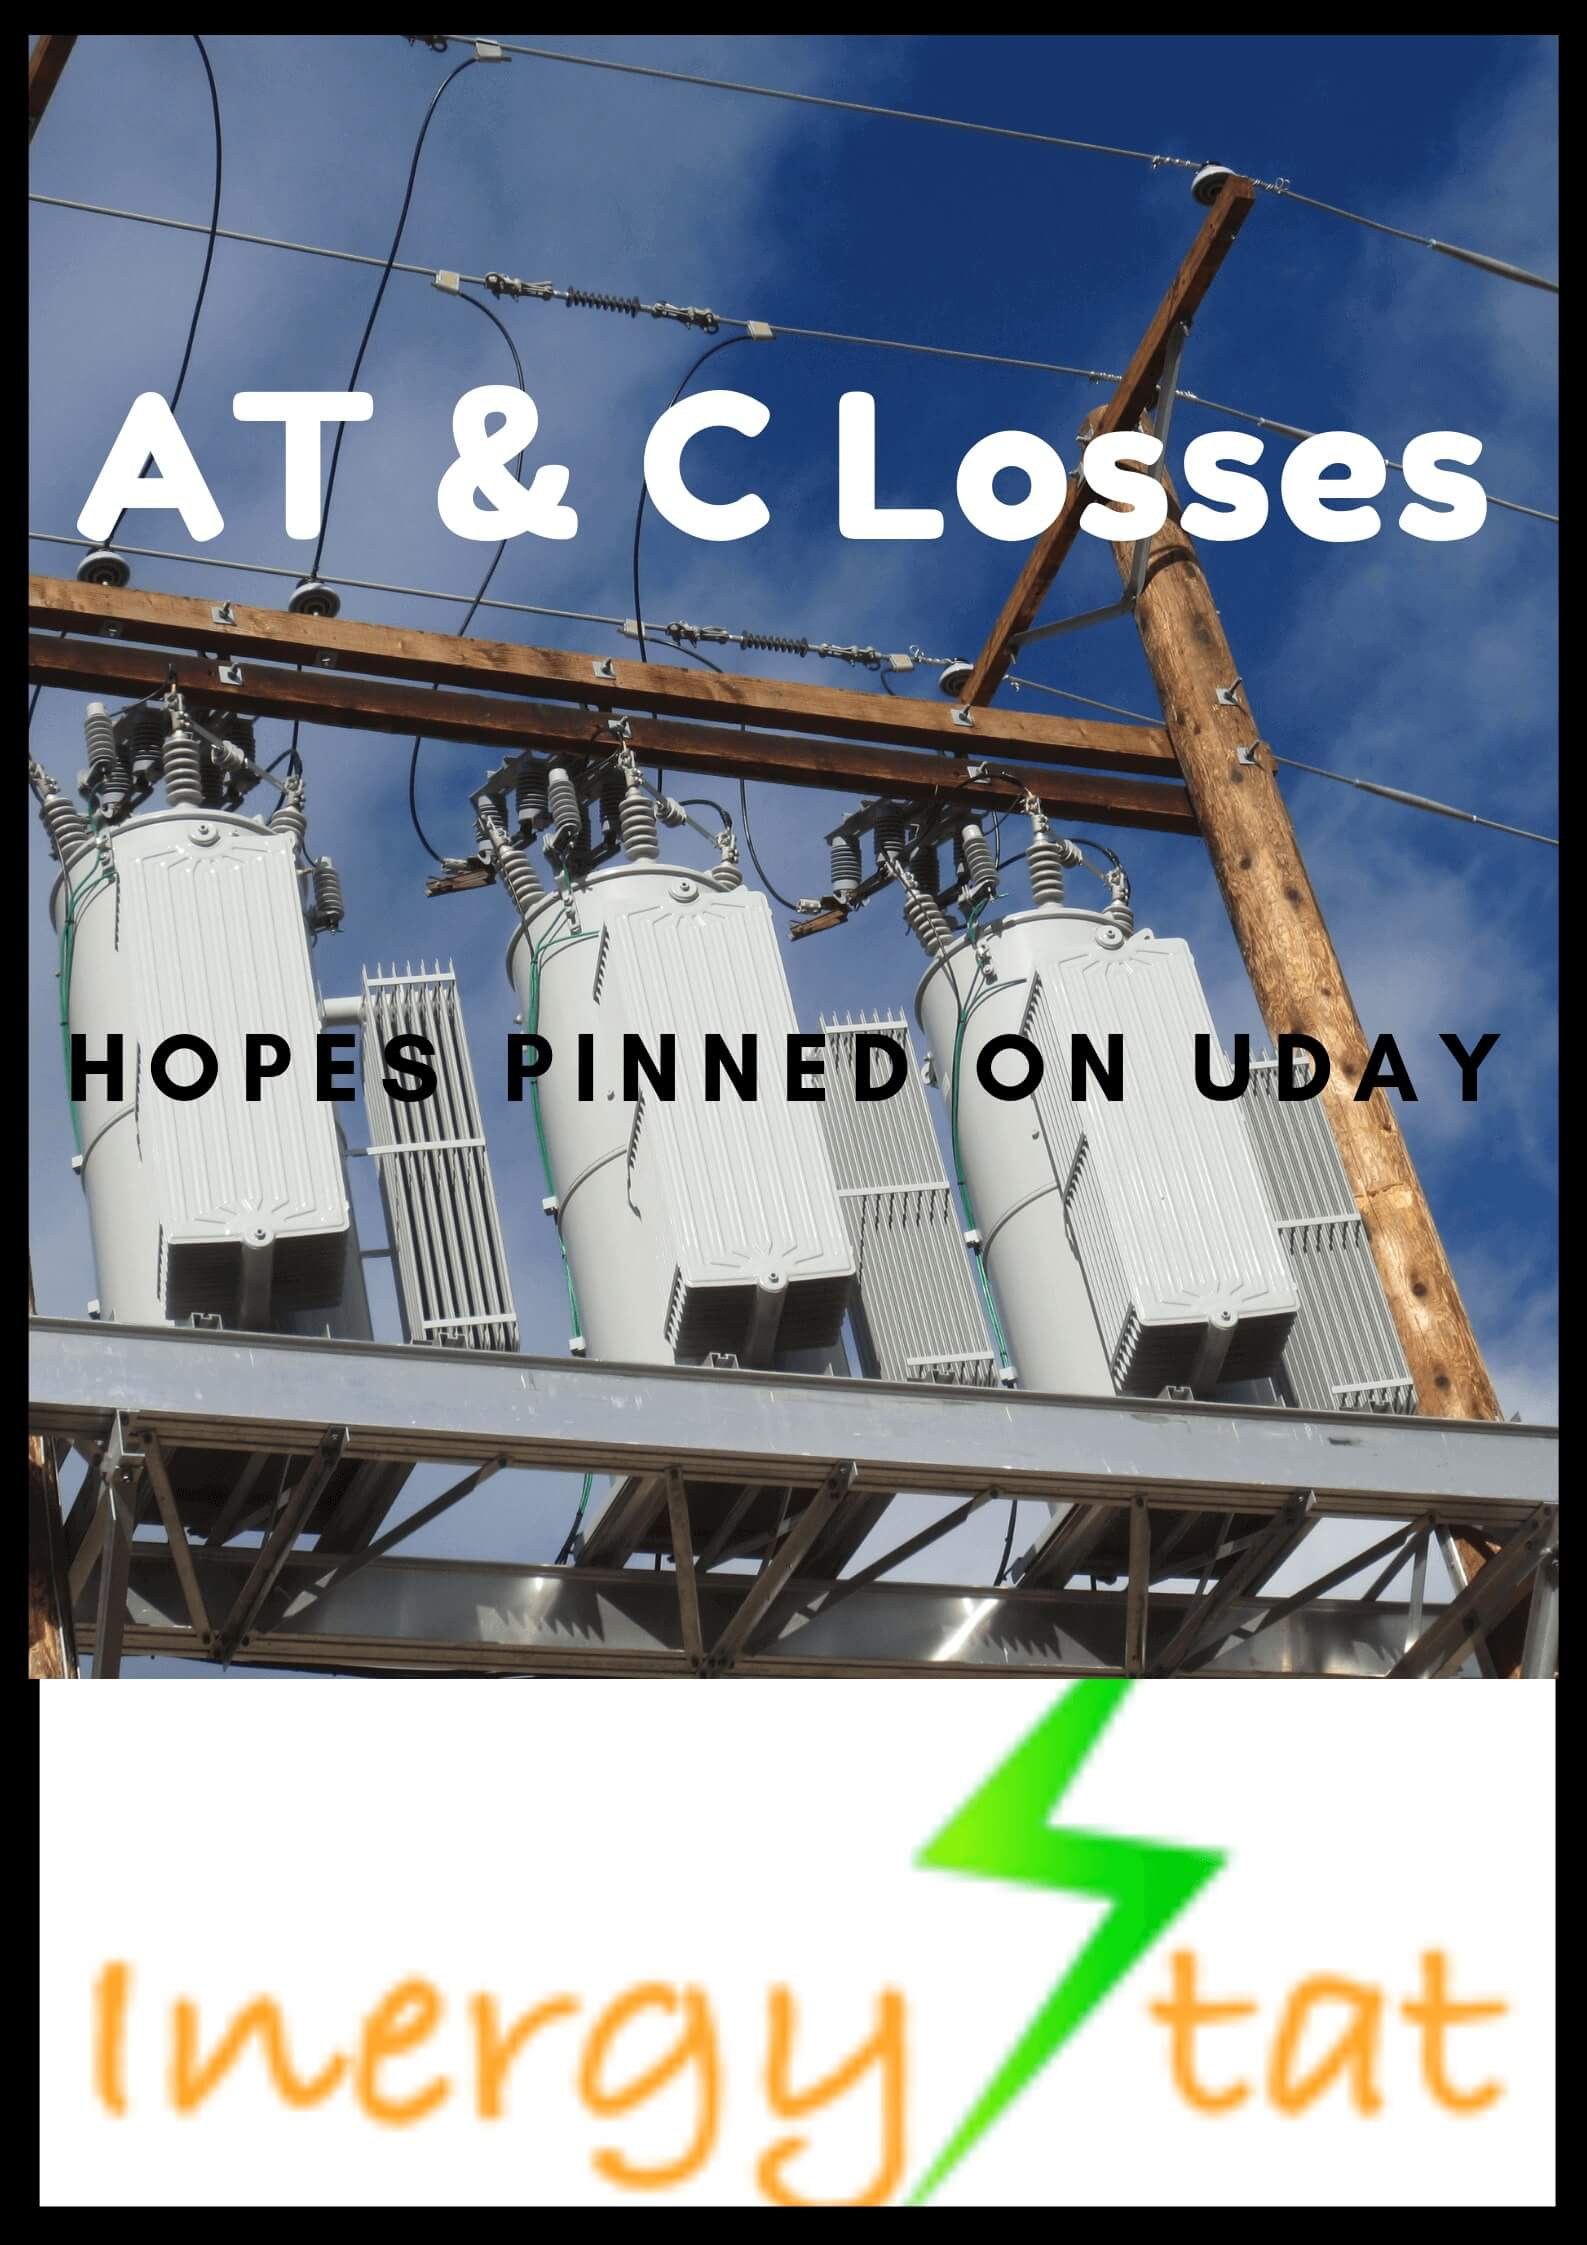 AT&C loss reduction: Hopes pinned on UDAY